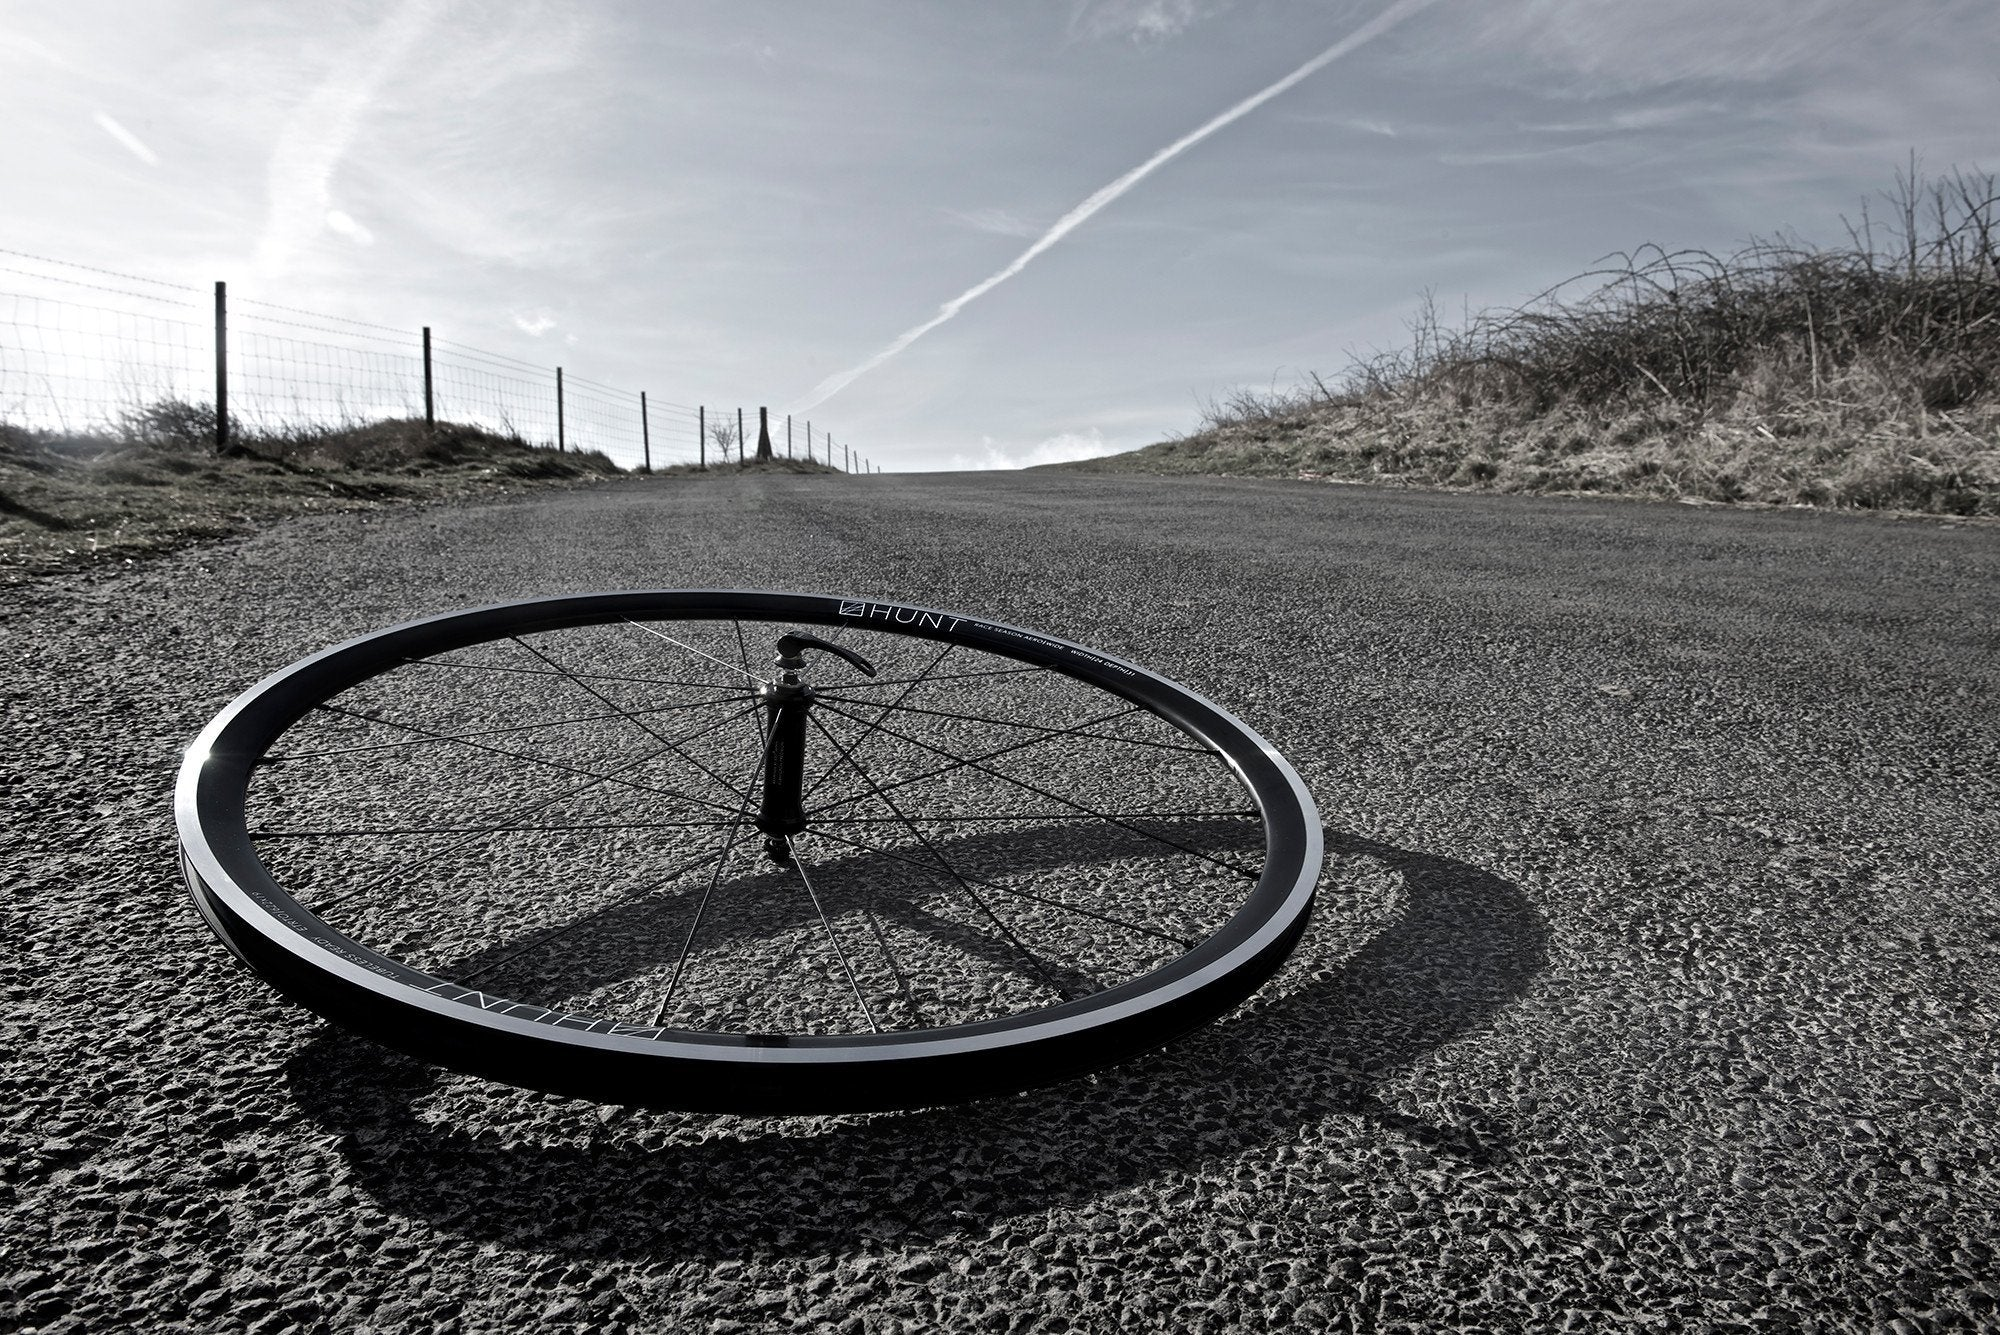 <h1>Weight</h1><i>The consequence of the fanatic attention to detail is a very low 1496 gram wheelset weight especially for this aero depth and width combination. These wheels deliver your potential and then some,. Go on push even harder, they will reward you.</i>